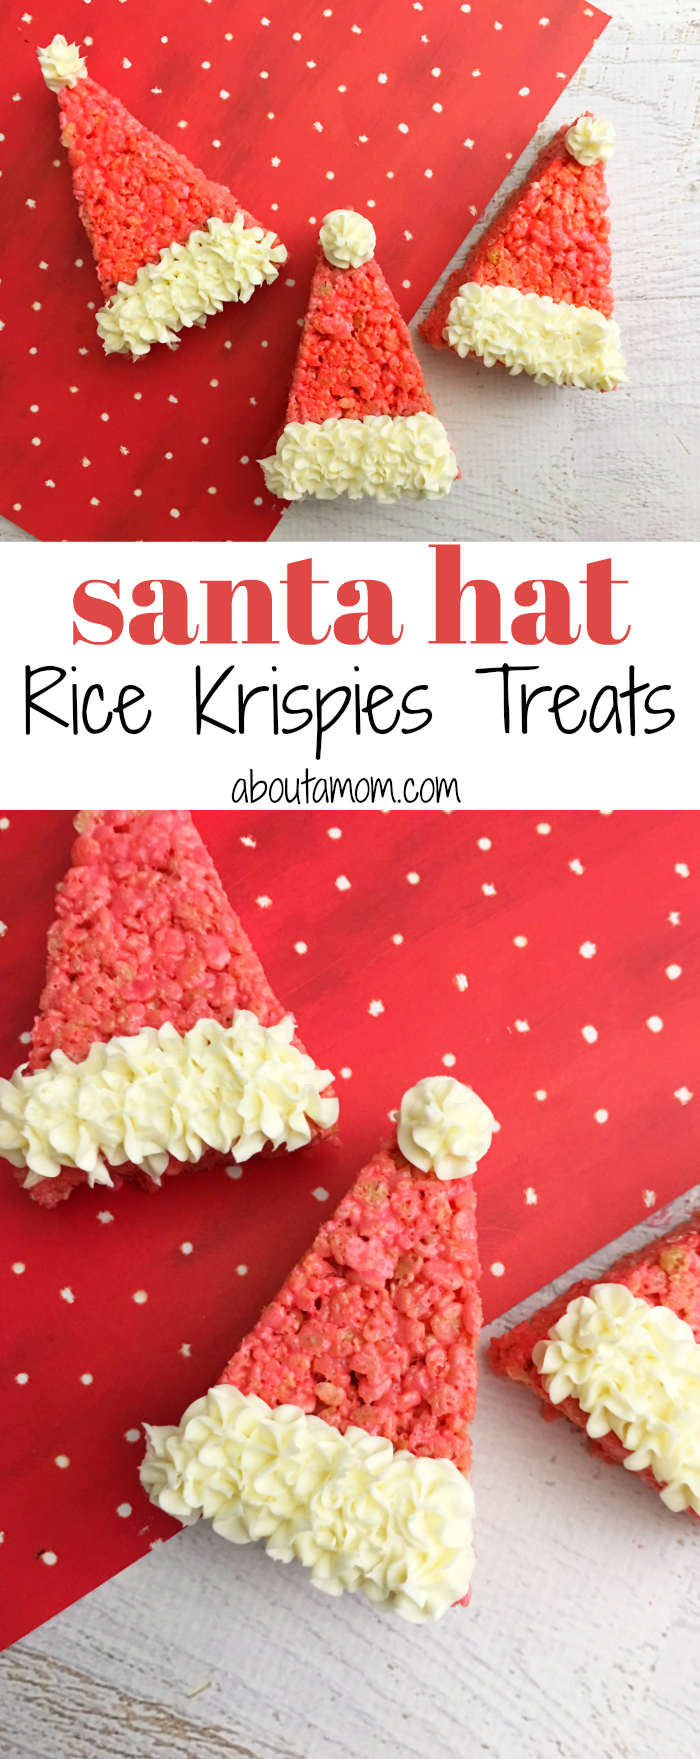 Looking for a last minute Christmas treat? These cute Santa Hat Rice Krispie treats are so cute, easy to make and ready in no time.